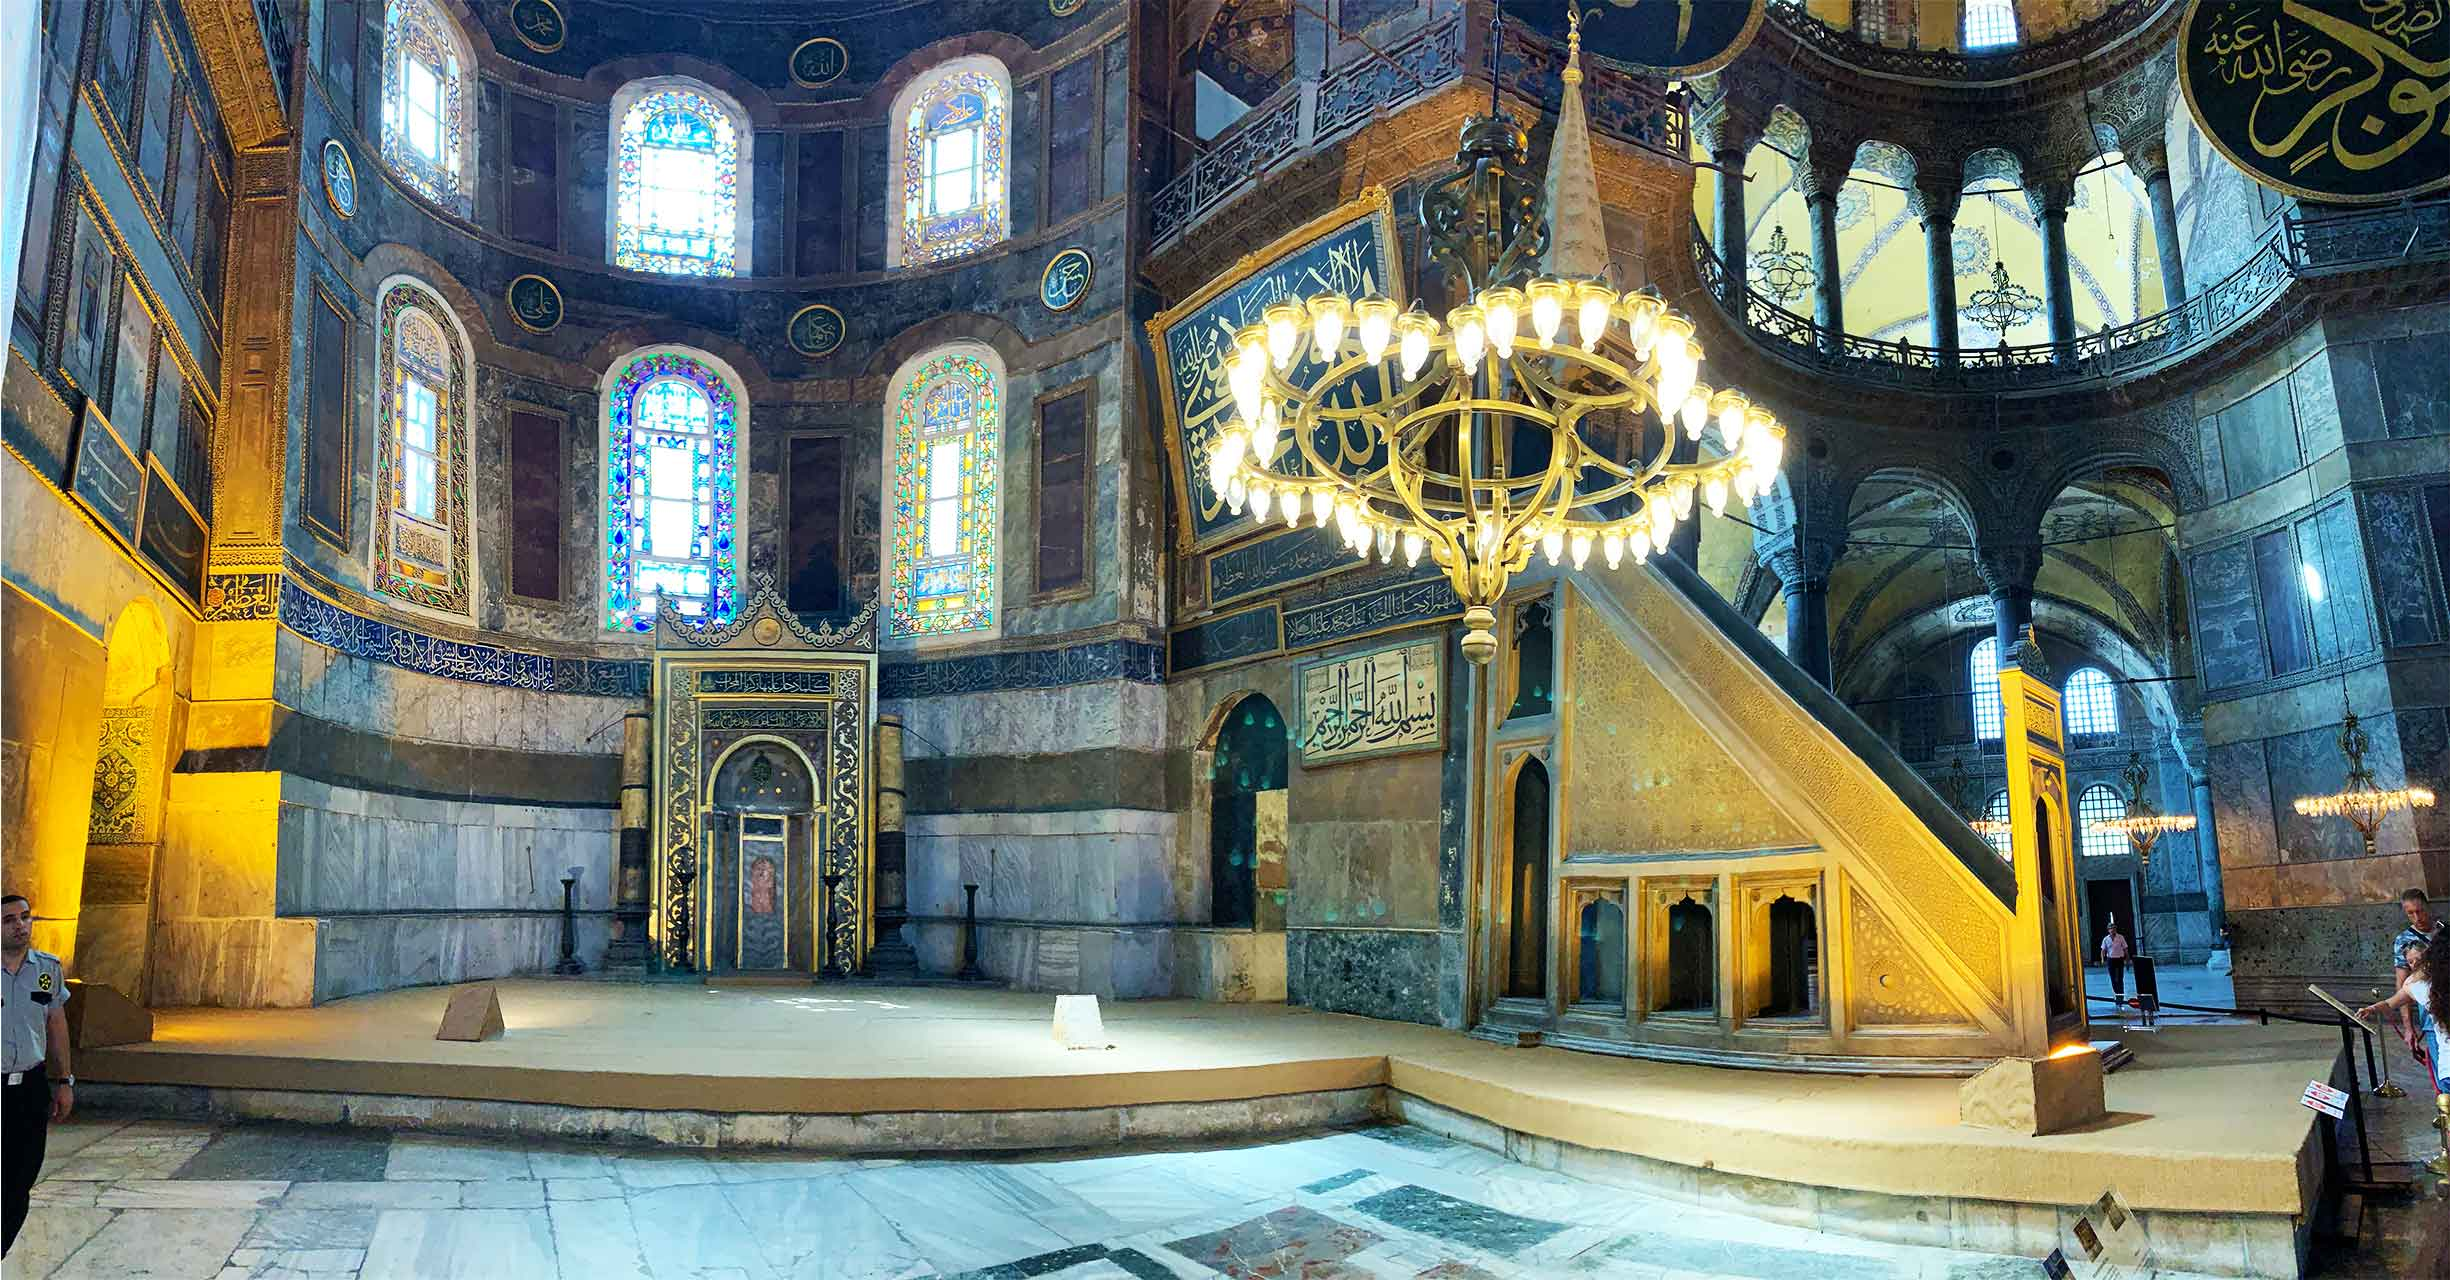 Hagia Sophia | Ayasofya Museum Mihrab alter and Minbar pulpit | Istanbul Turkey | 2019 Photo Dr Steven Andrew Martin